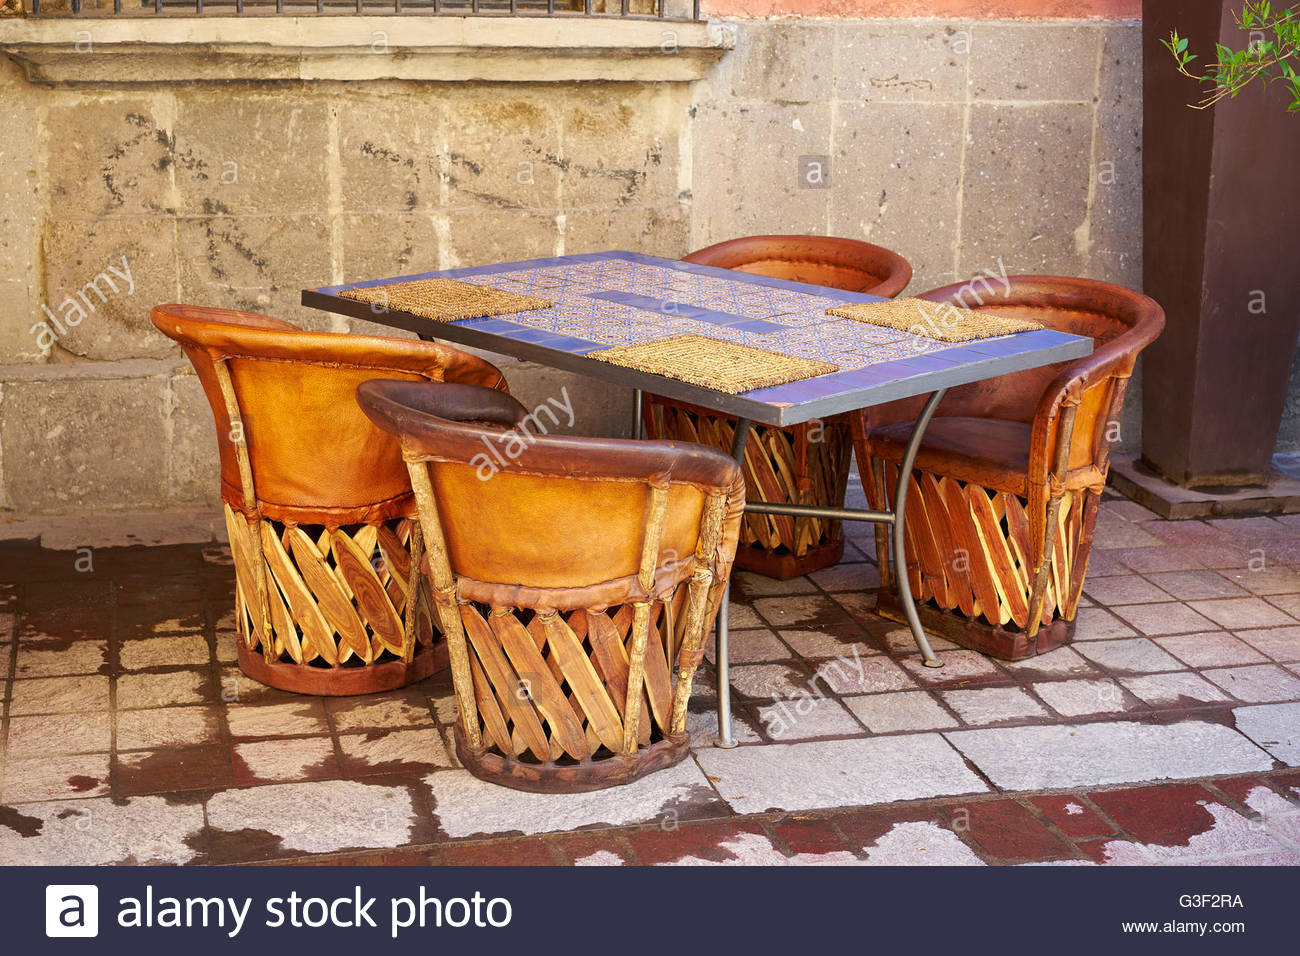 Stock Photo   Tlaquepacque, Guadalajara, Mexico. Equipal Chairs Are Made In  This Area From Wood And Leather And Symbolize The State Of Jalisco